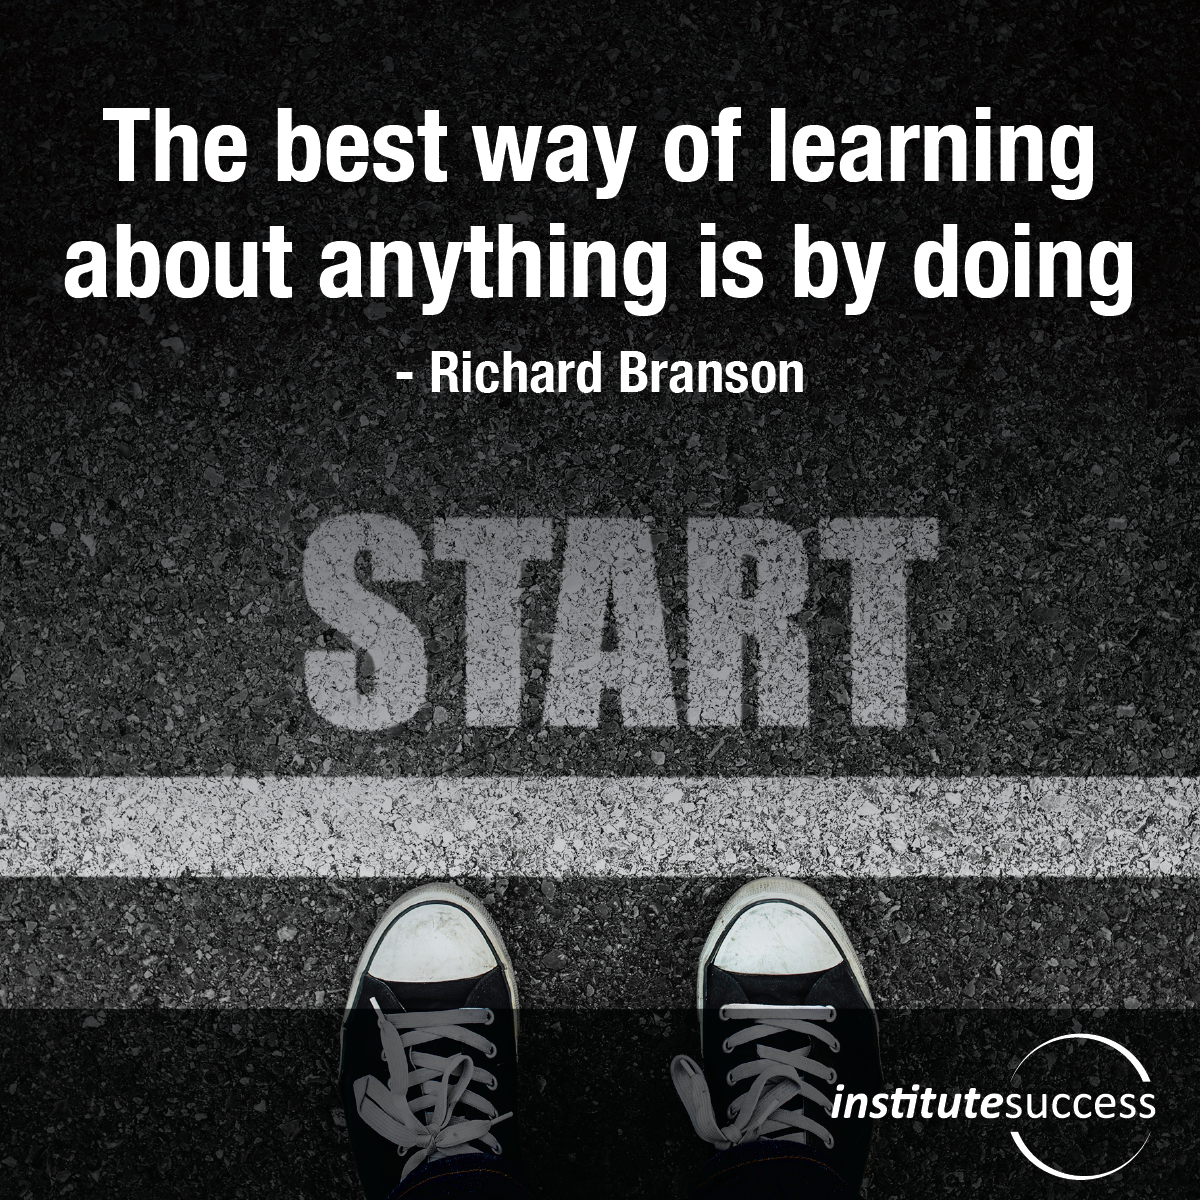 The best way of learning about anything is by doing – Richard Branson